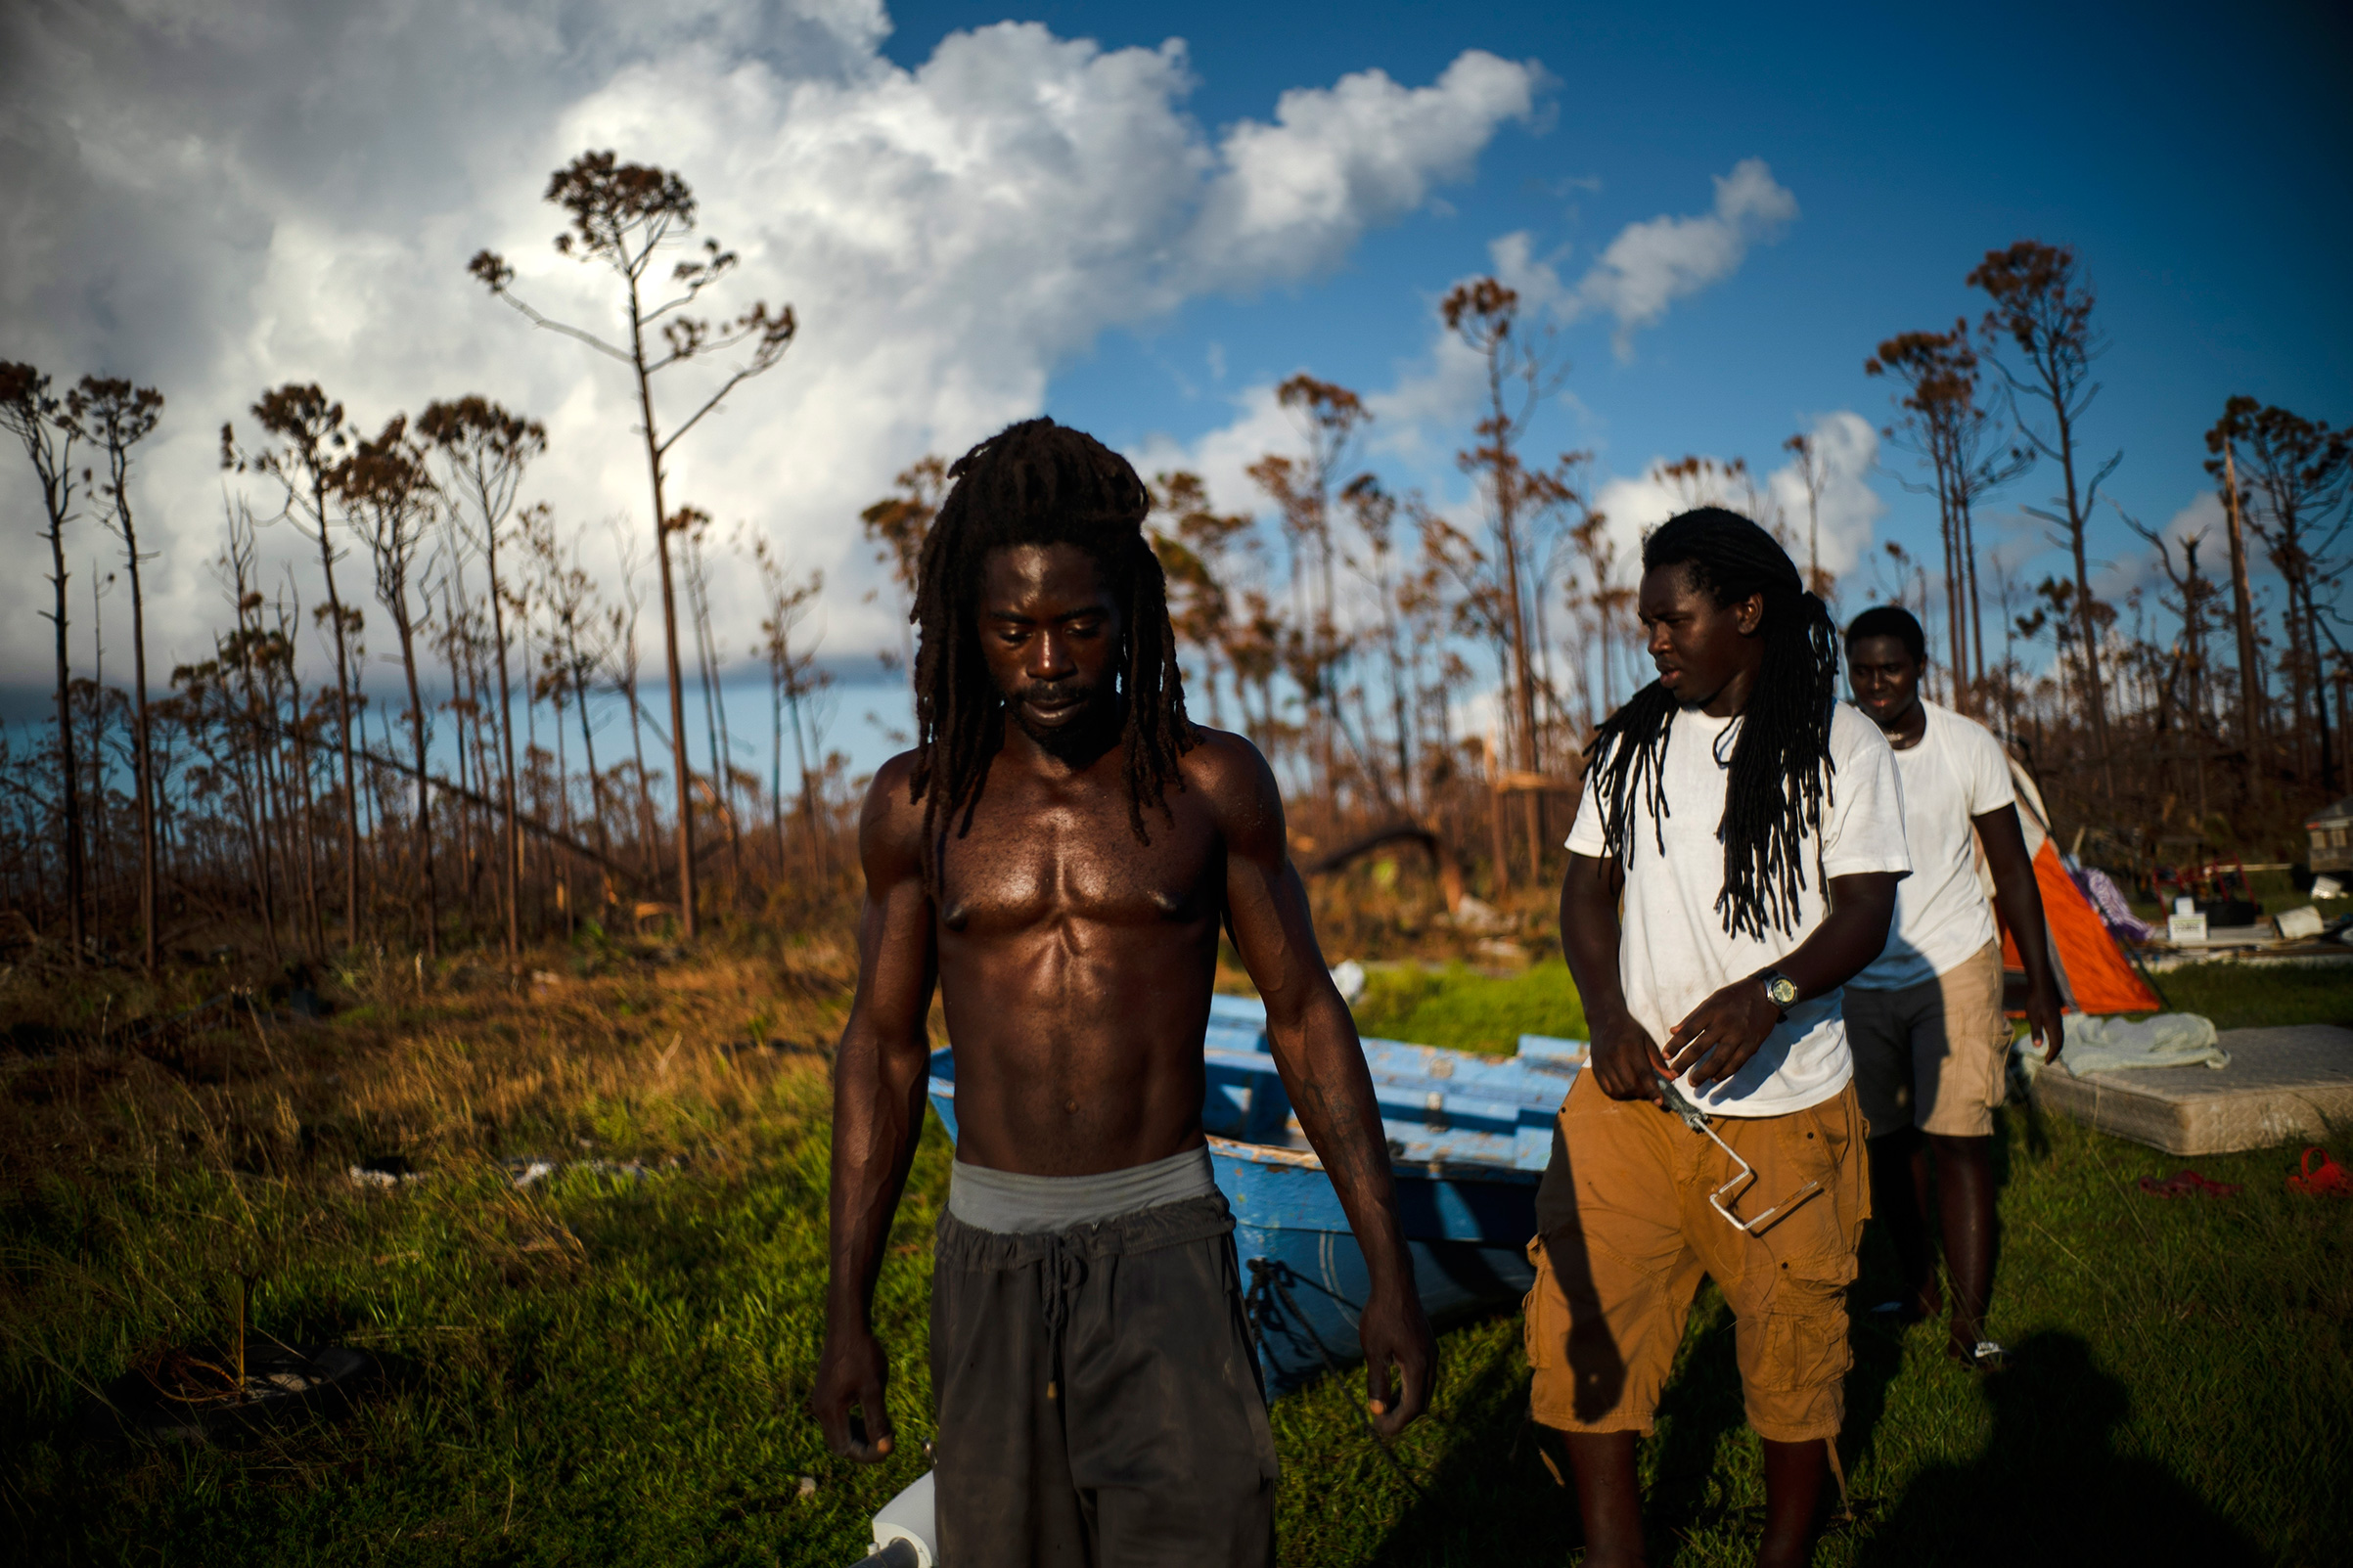 Dexter Edwards, front, his brother Nathanael Edwards right, and his cousin Valentino Ingraham walk amid one of their family's homes destroyed by Hurricane Dorian in Rocky Creek East End, Grand Bahama, Bahamas, Sept. 8, 2019.  Right now, ain't much joy. You just gotta try to keep your head up,  Edwards said.  There's always a future. Only thing we can do right now is rebuild-rebuild and try to move forward.